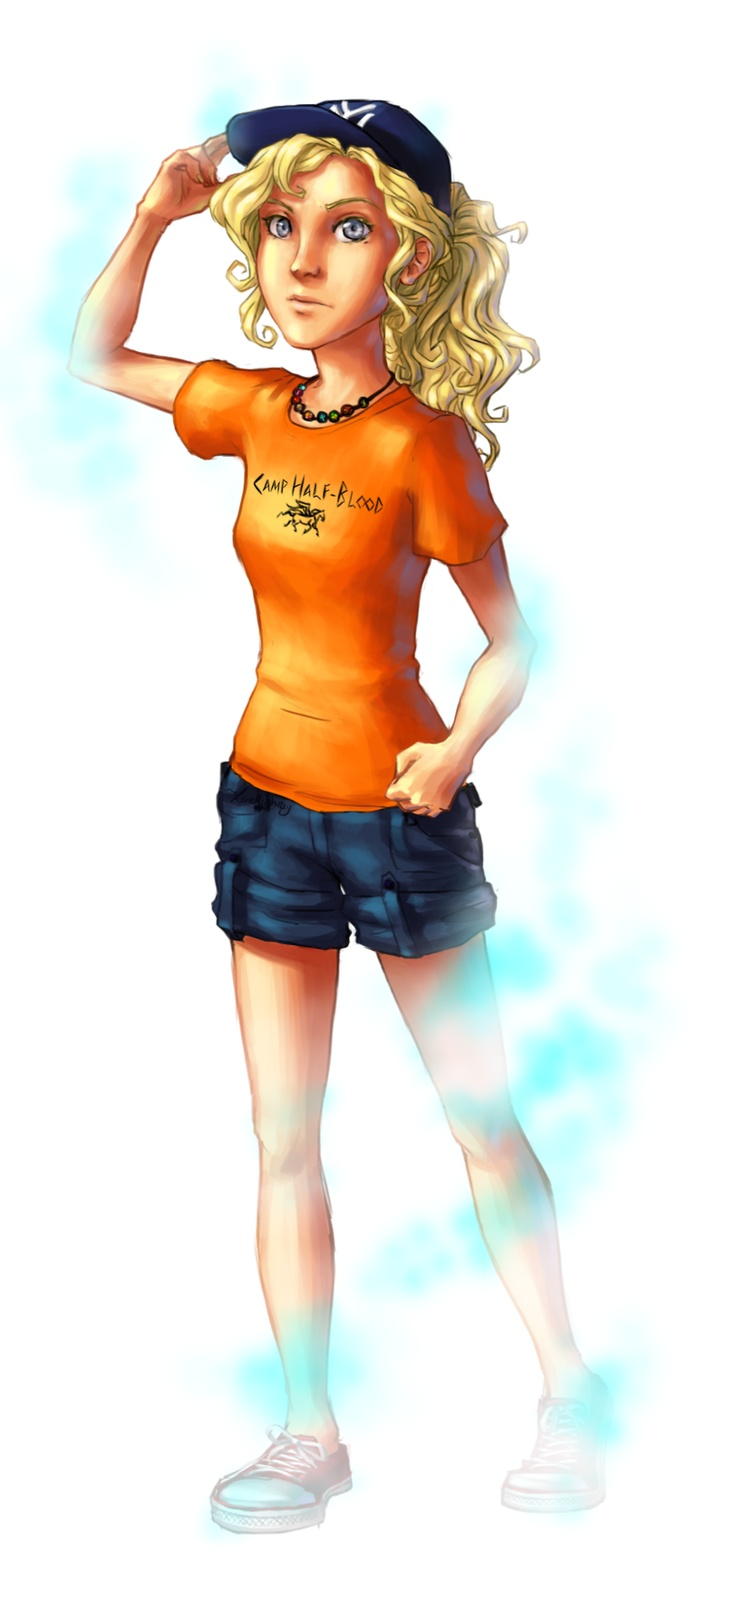 Annabeth Chase becoming invisible